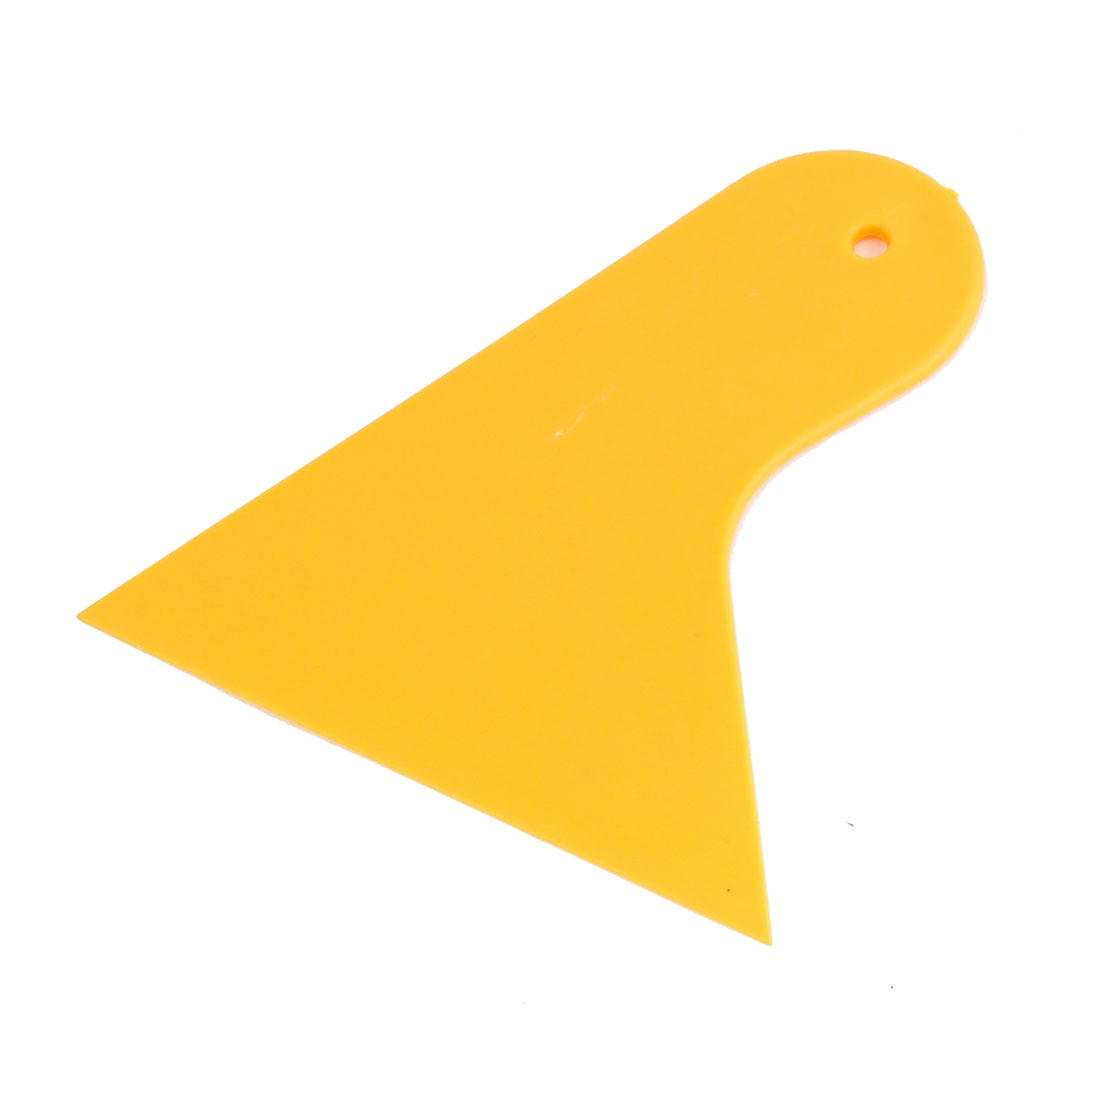 Yellow Plastic Vehicle Truck Car Window Film Tint Scraper Tool 12cm Long